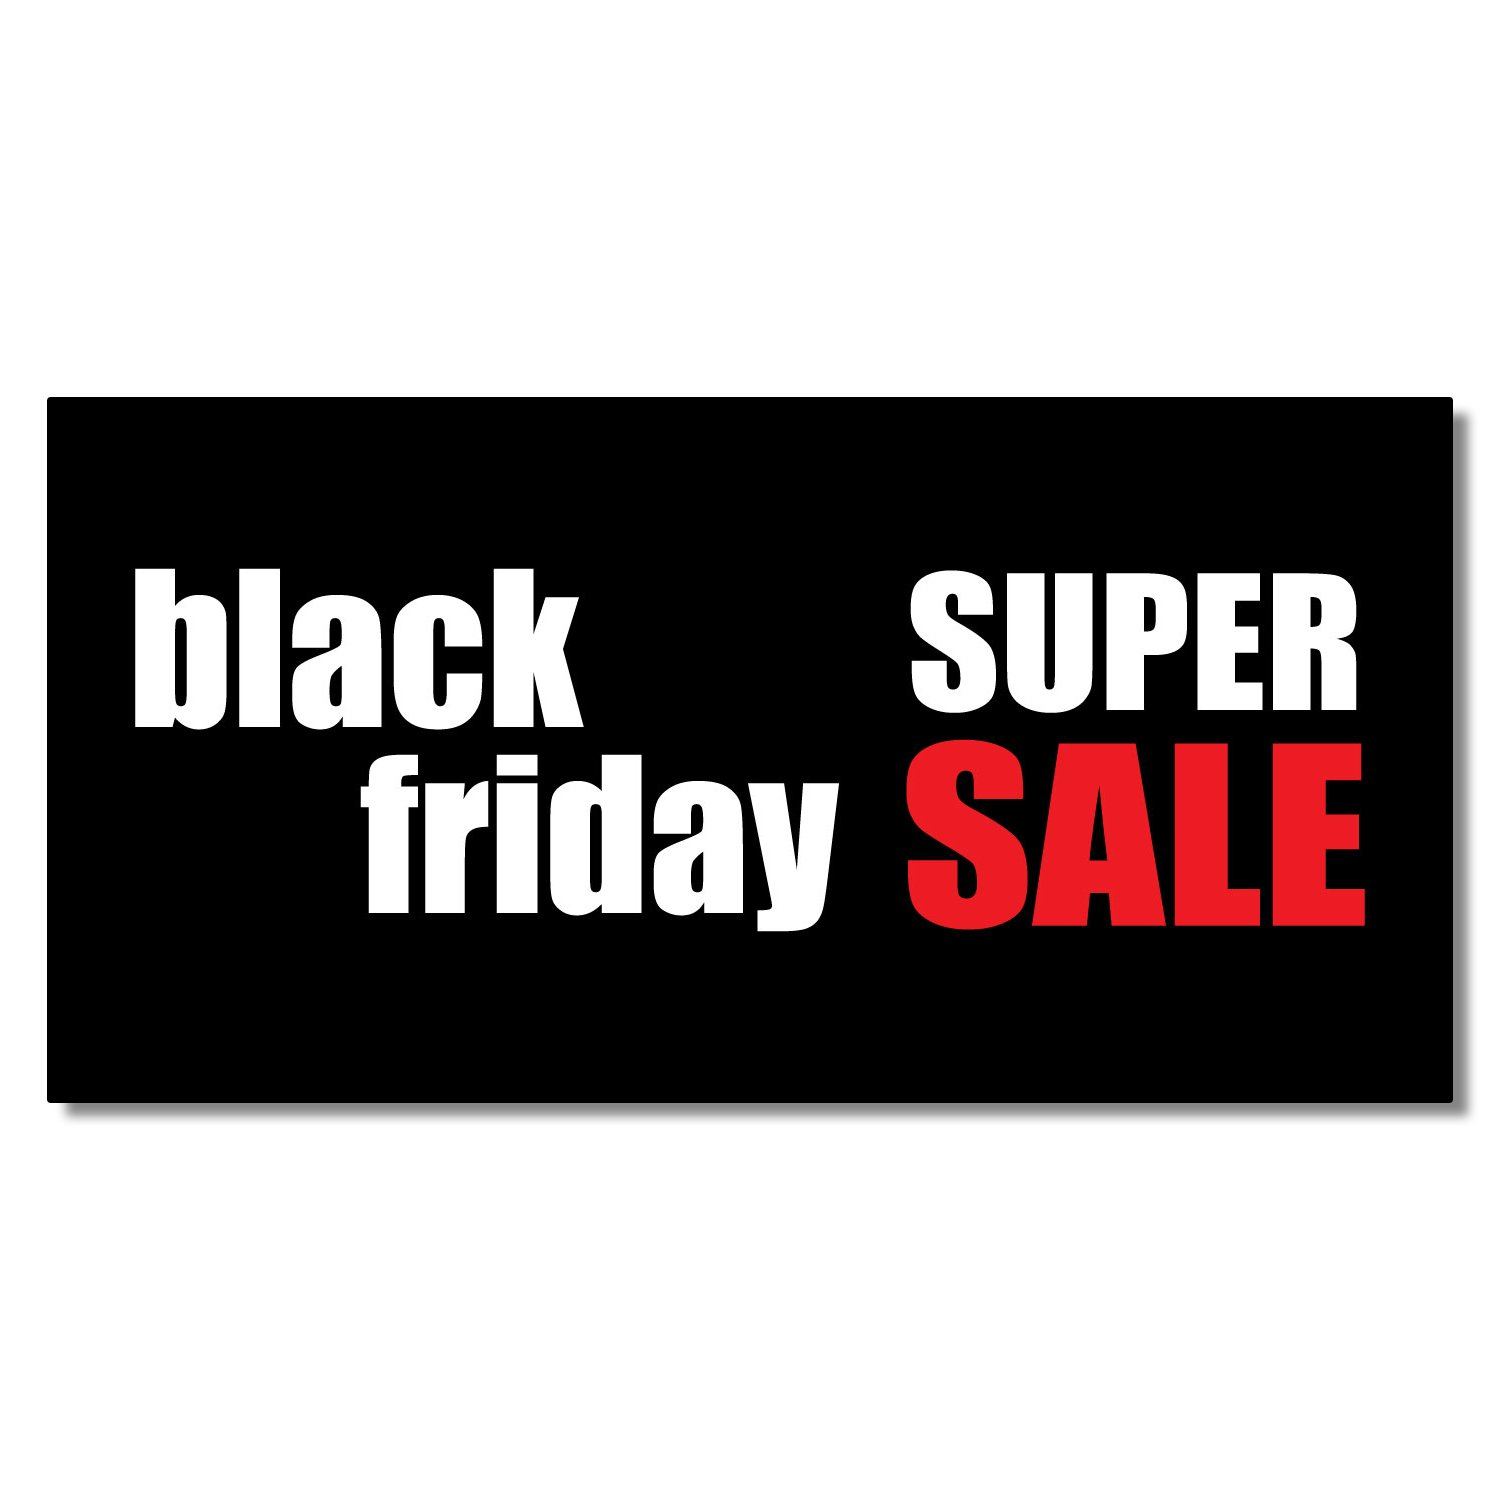 Black Friday Super Sale Business DECAL STICKER Retail Store Sign 9.5 x 24 inches